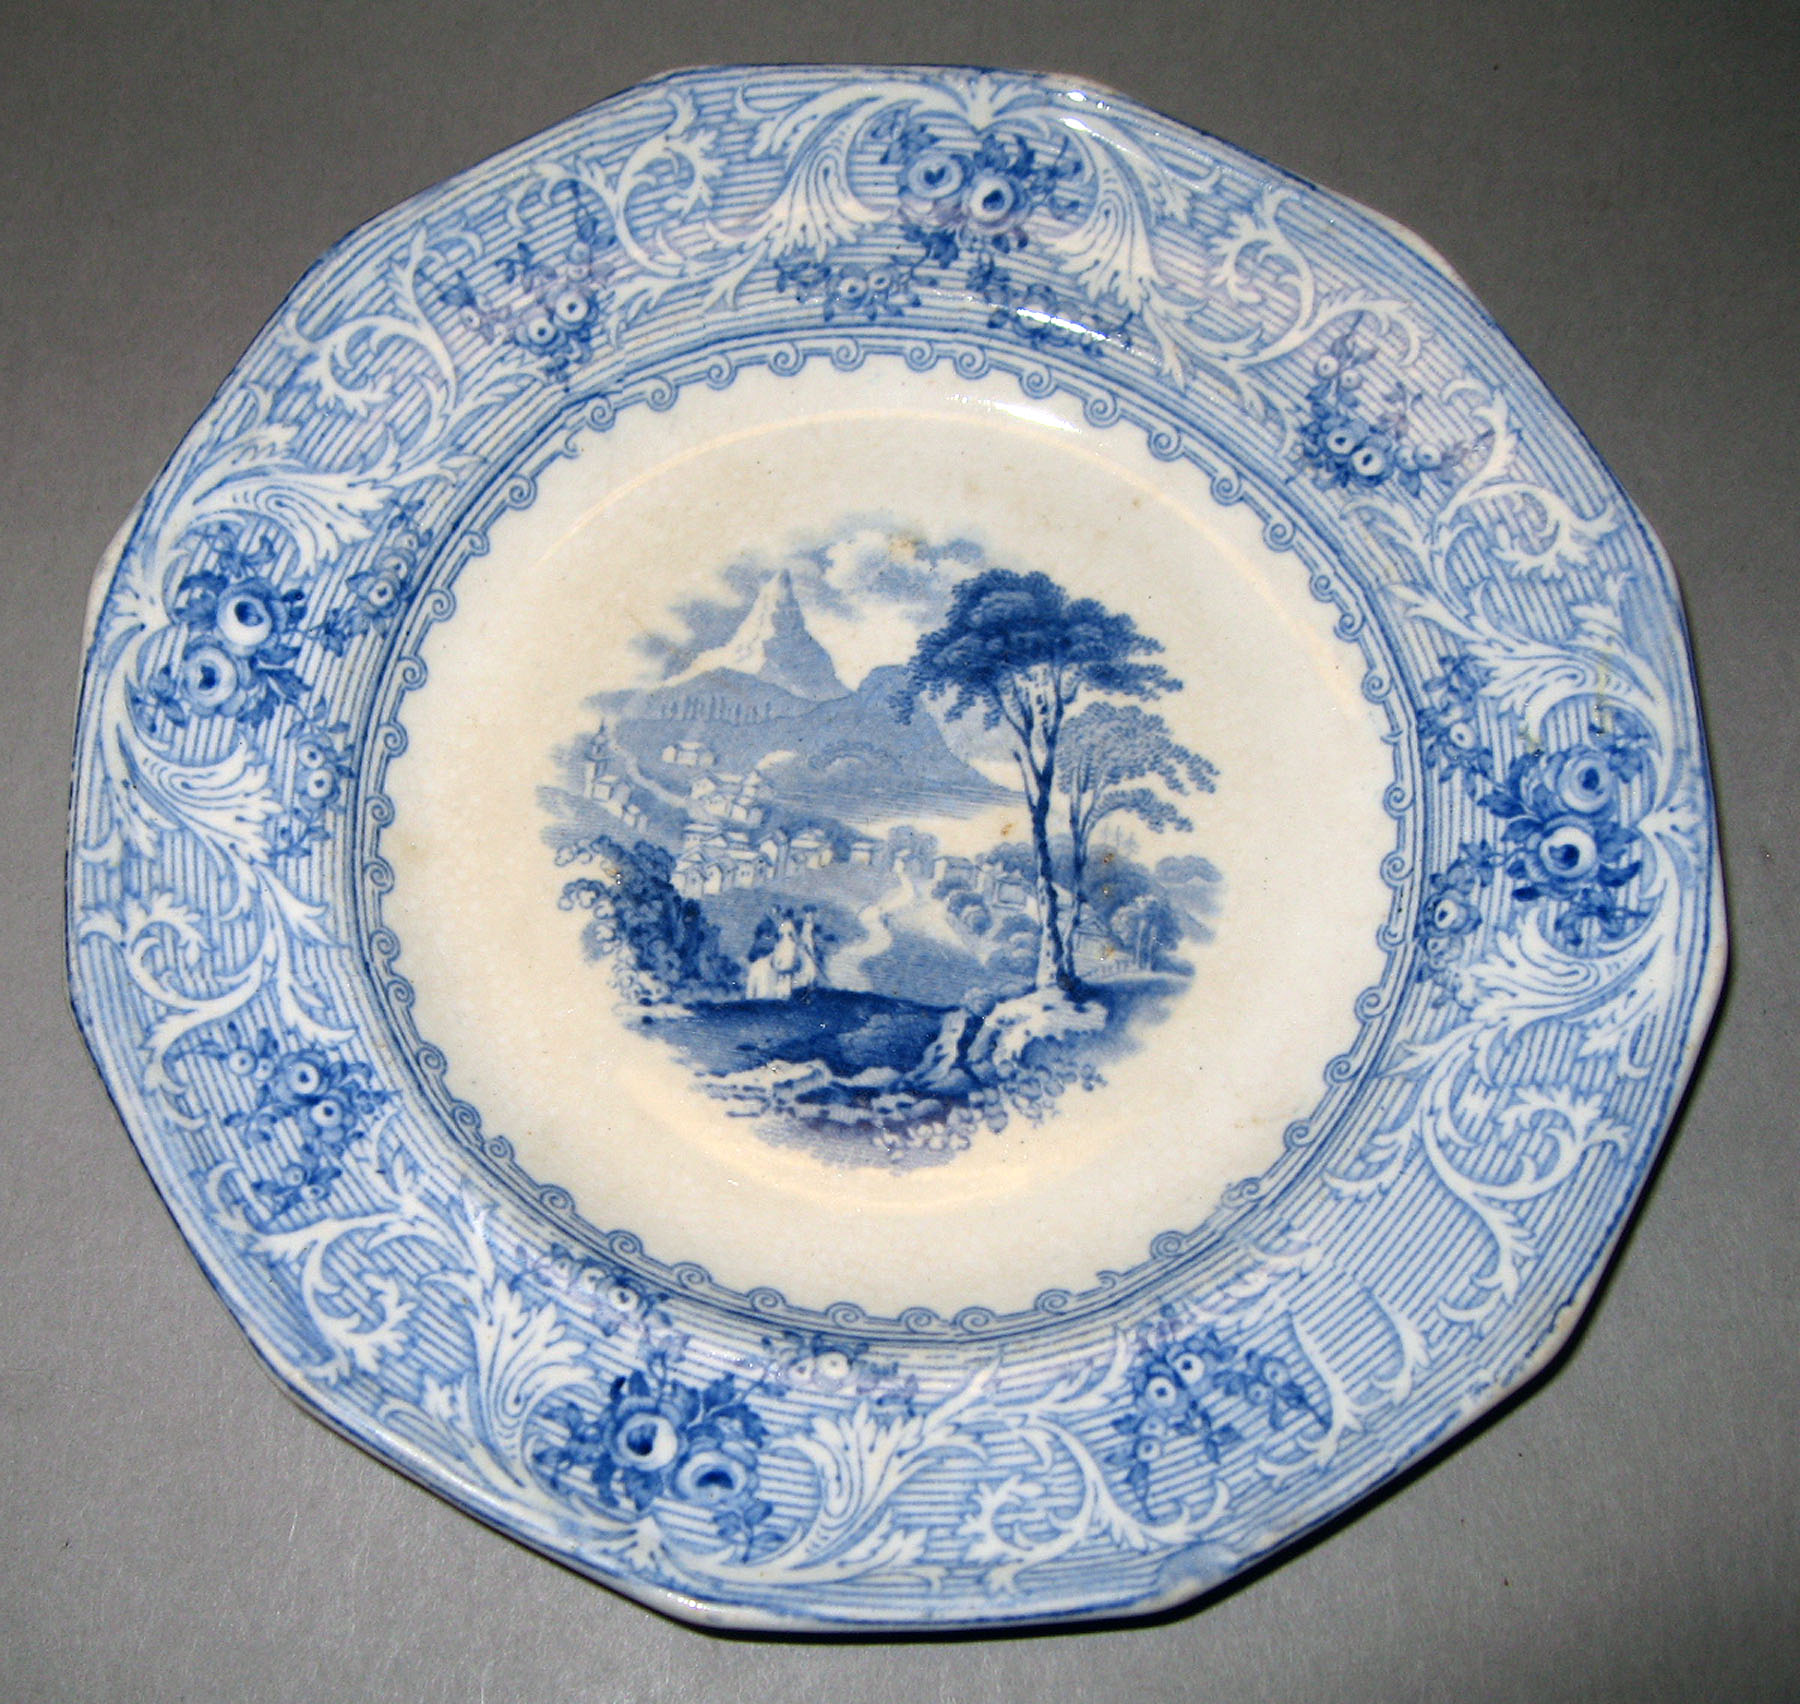 1969.1597 Earthenware plate